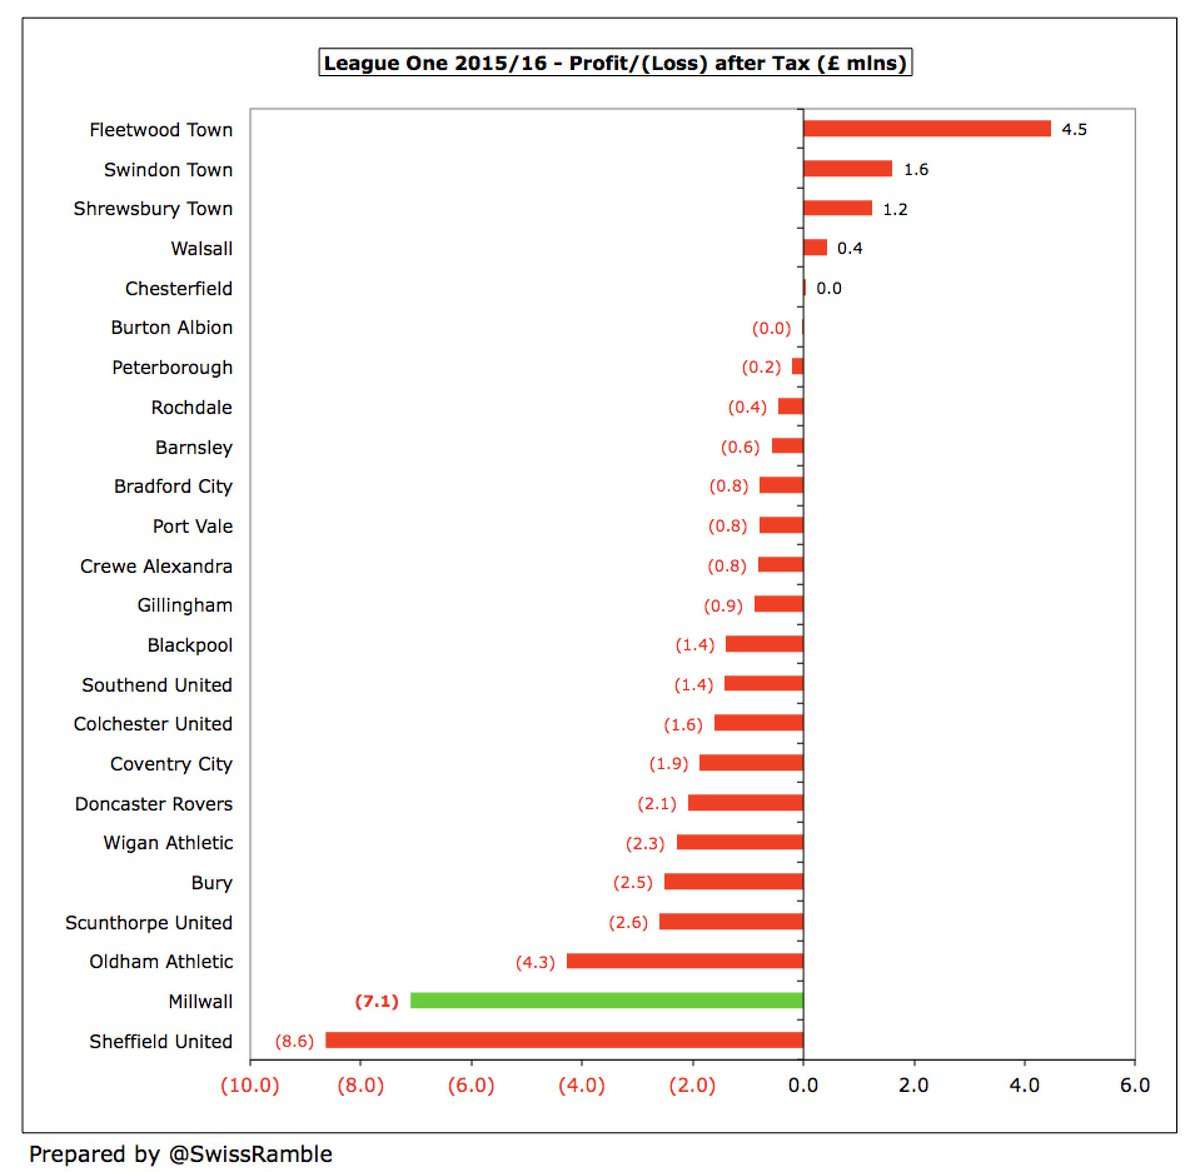 Almost all clubs in League One lose money with only five reporting profits in 2015/16. The largest of those was Fleetwood Town £4.5m, boosted by the £6.7m write-off of an inter-company loan. That said, #Millwall had the second highest loss (£7.1m) in the division that season.